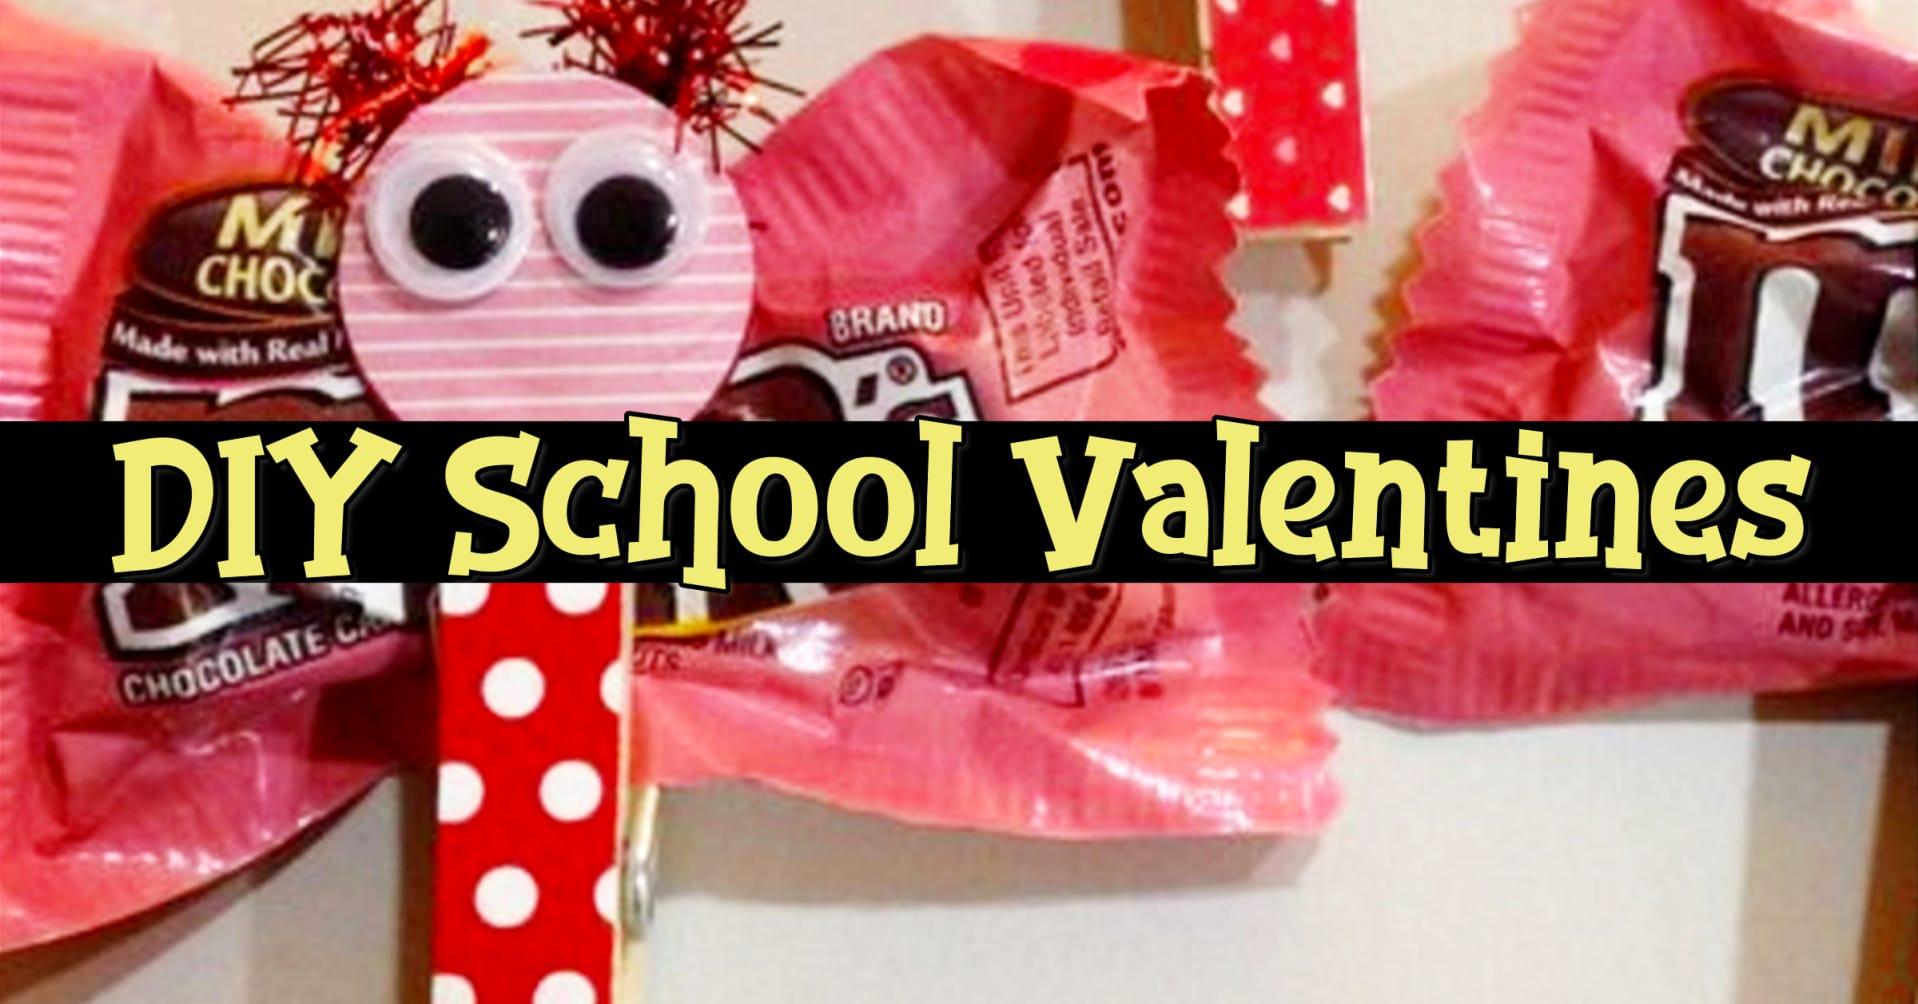 DIY school valentines for the classroom and for teachers - cute ideas!